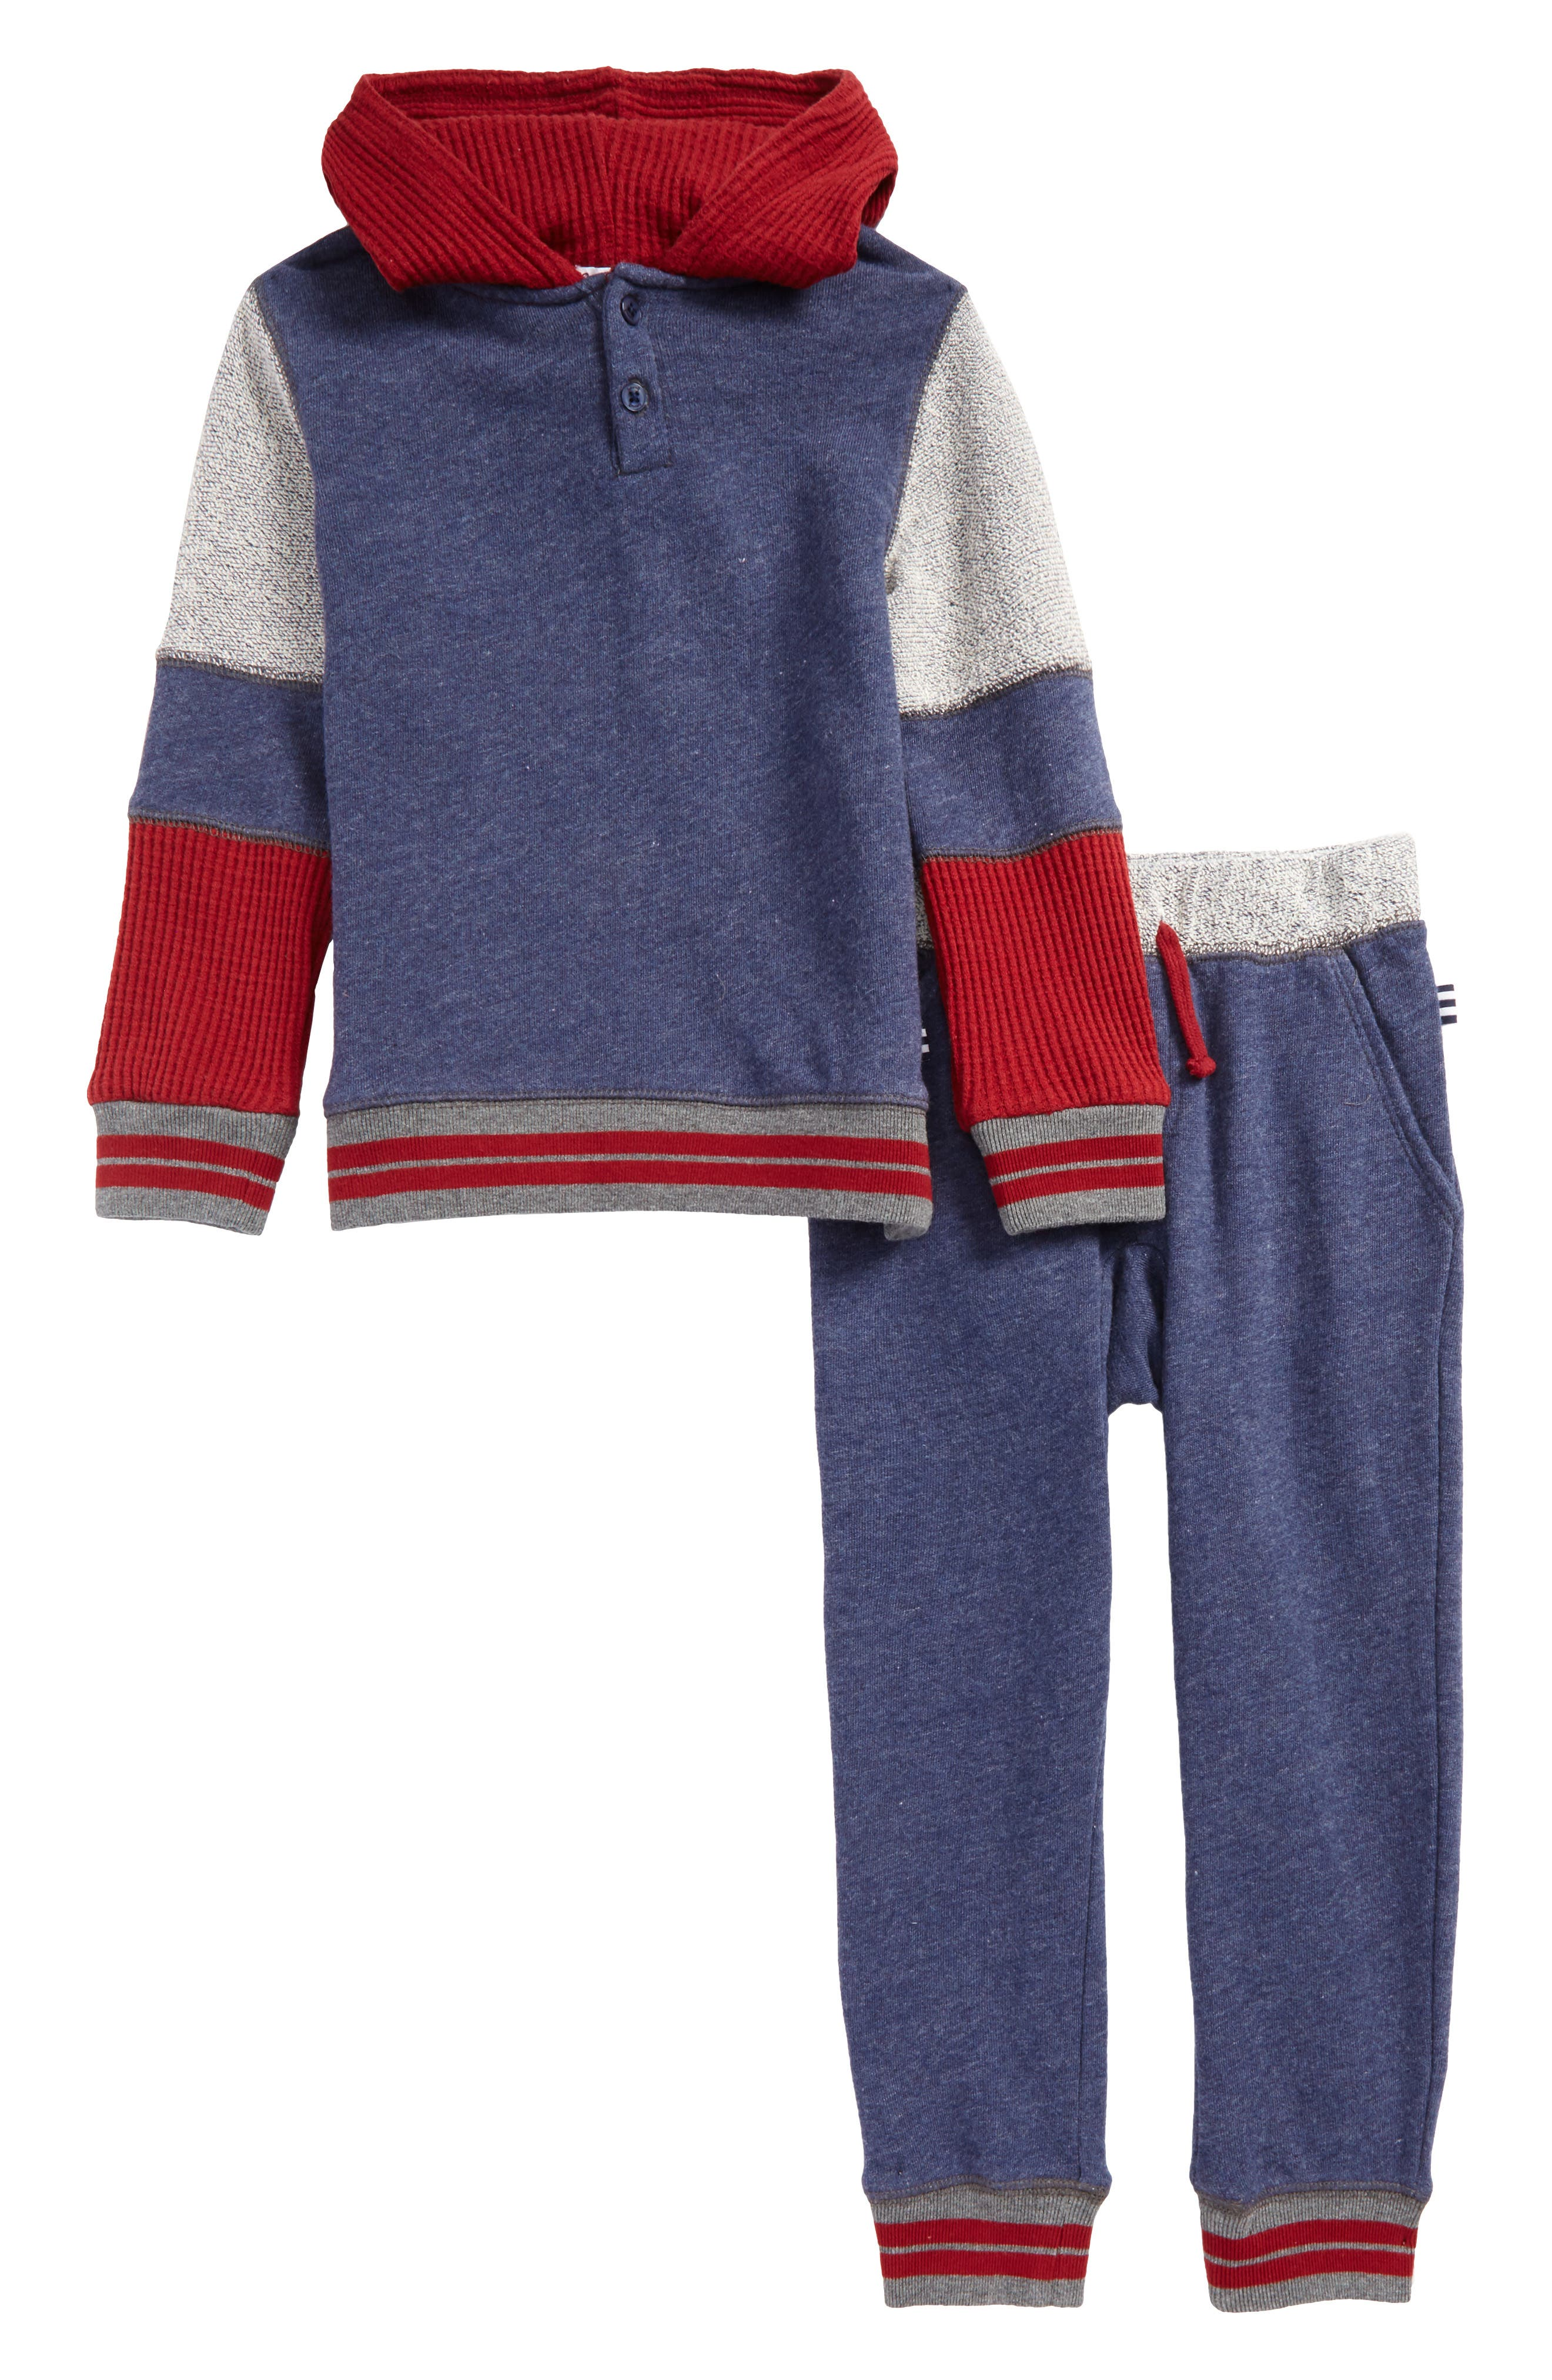 Mixed Media Hoodie & Sweatpants Set,                         Main,                         color, Navy Heather